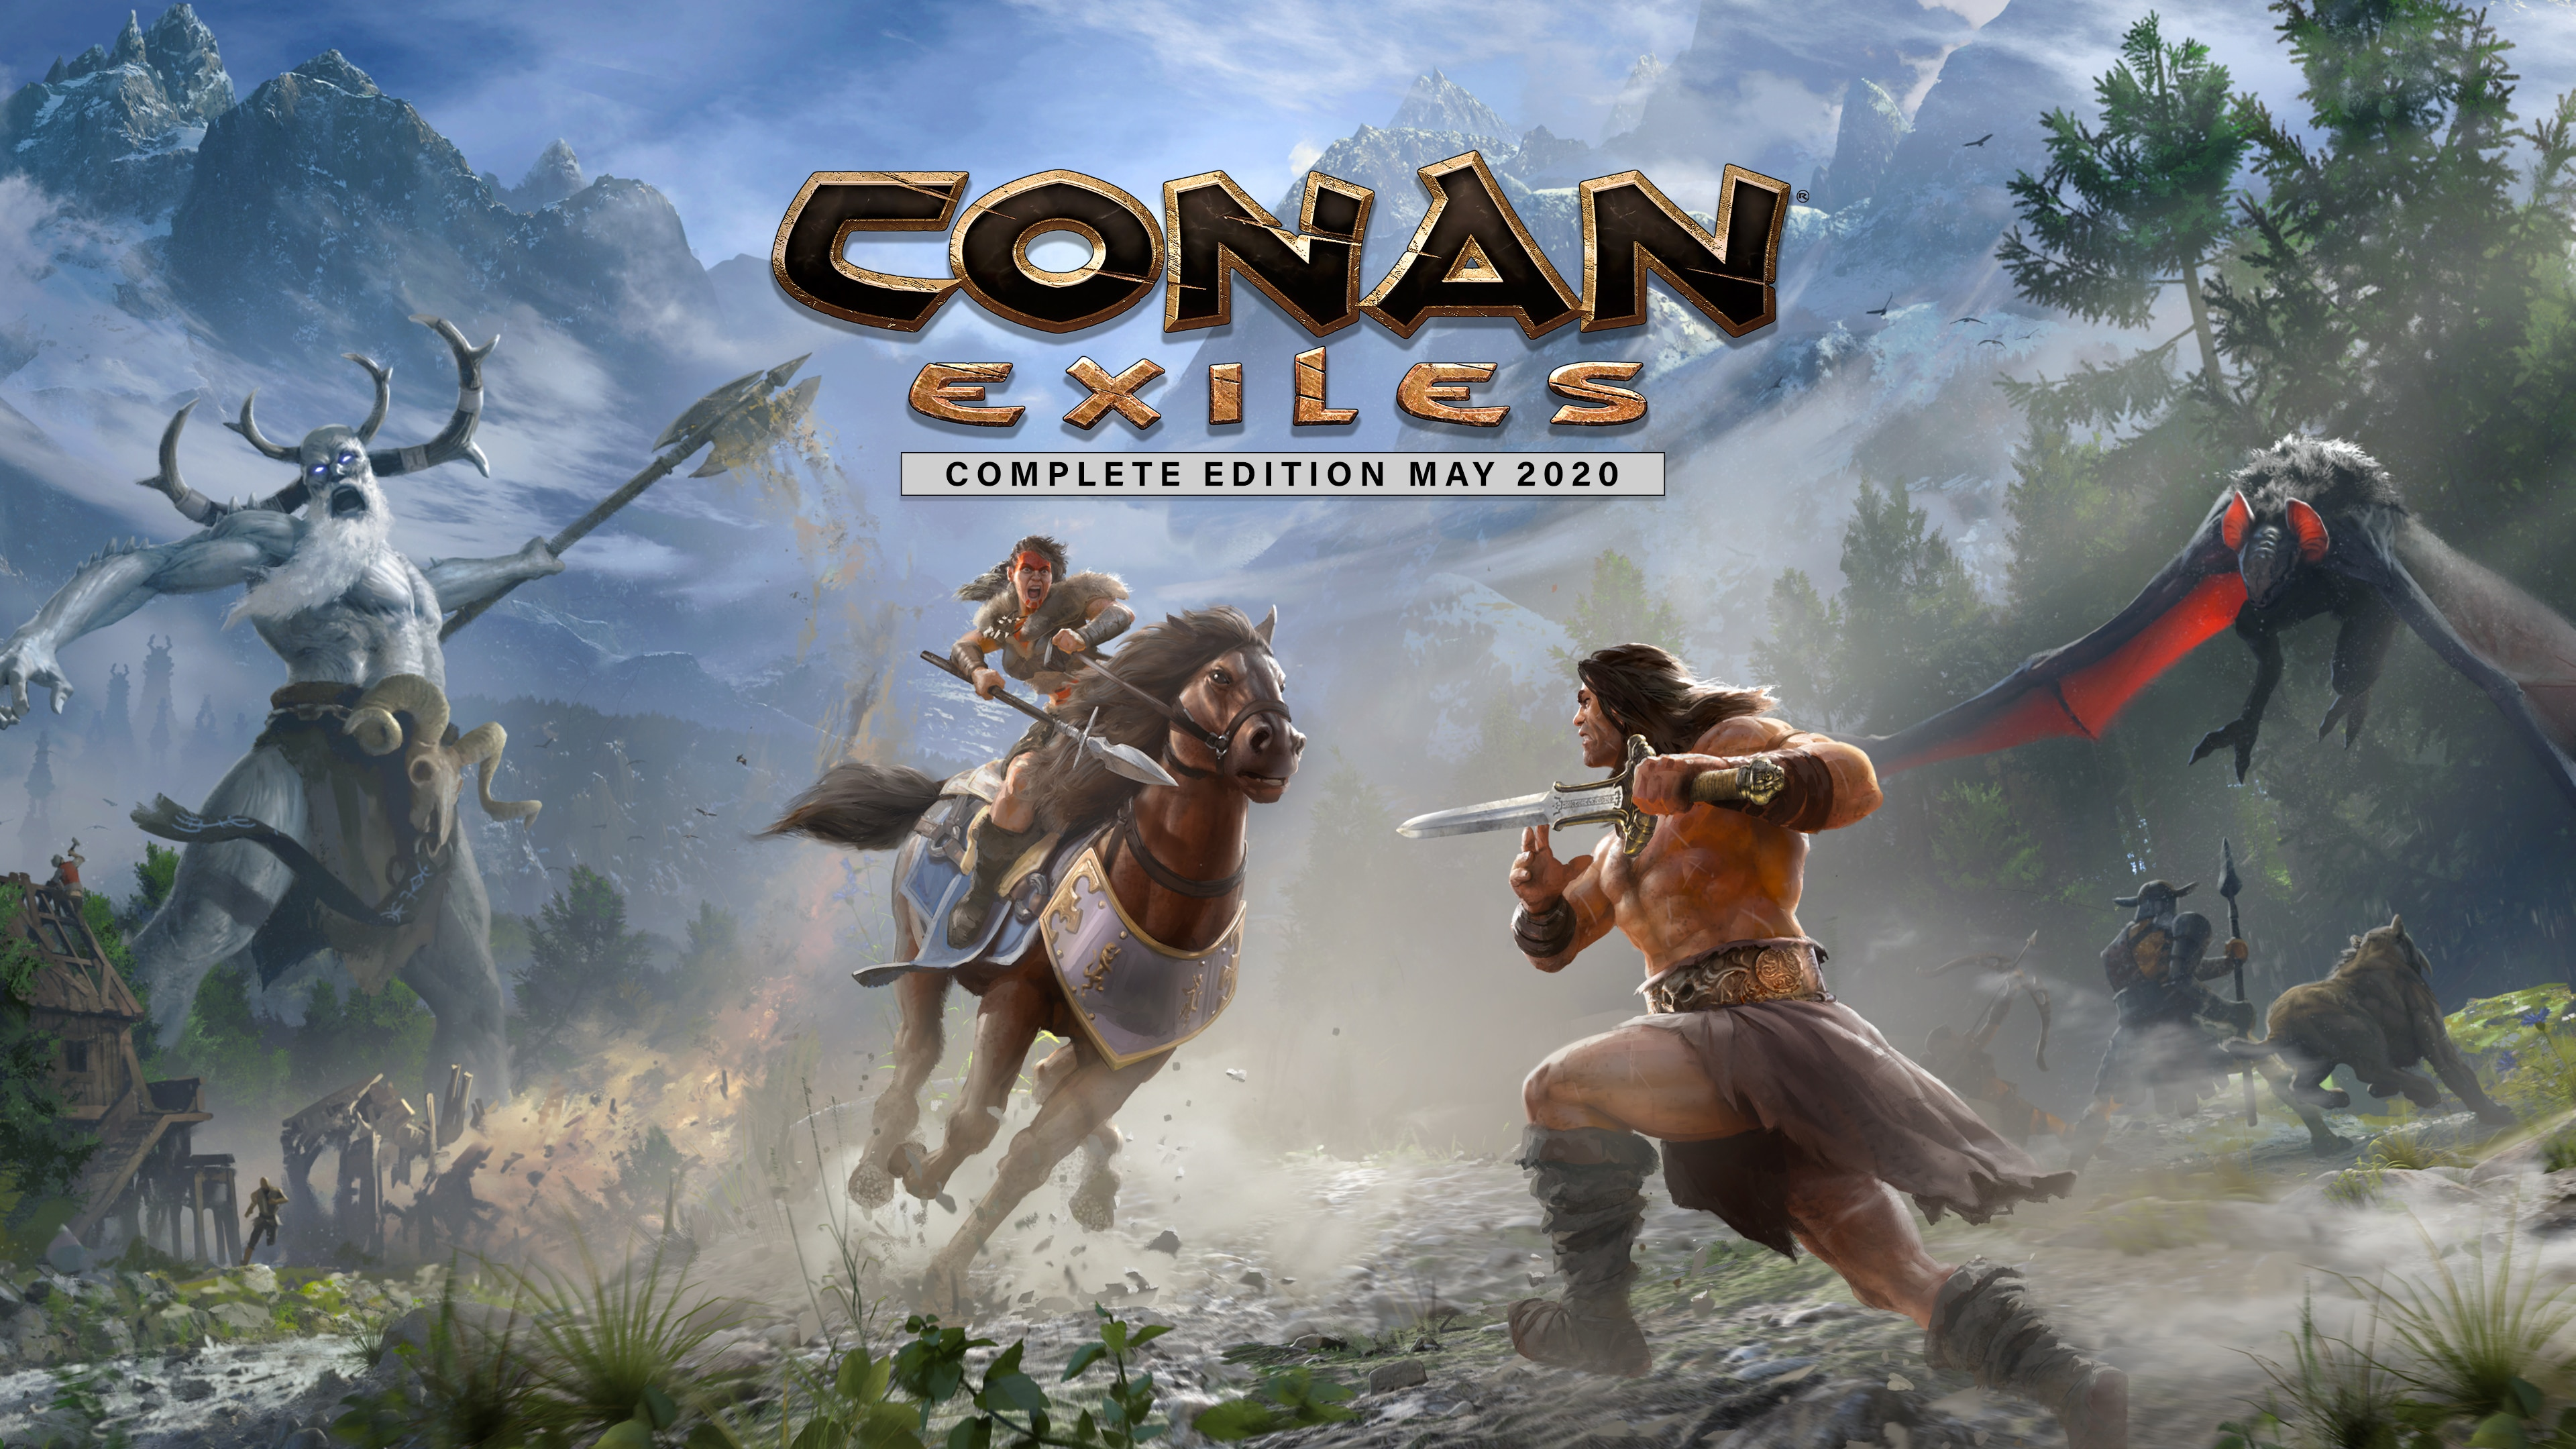 Conan Exiles – Complete Edition May 2020